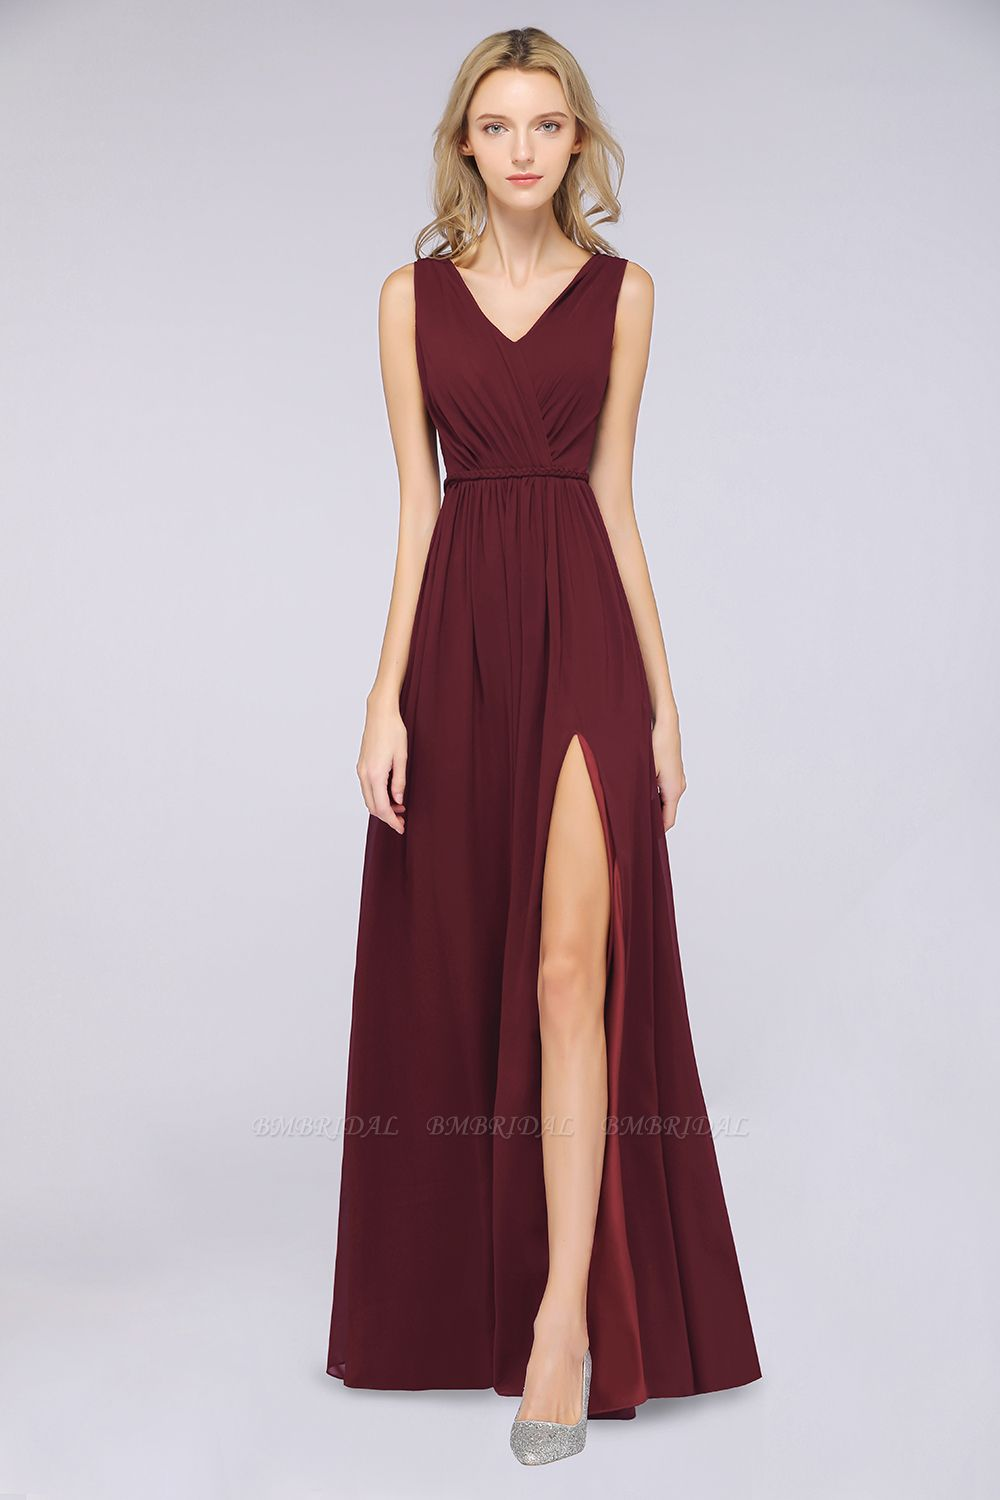 Glamorous TulleV-Neck Ruffle Burgundy Bridesmaid Dress Online